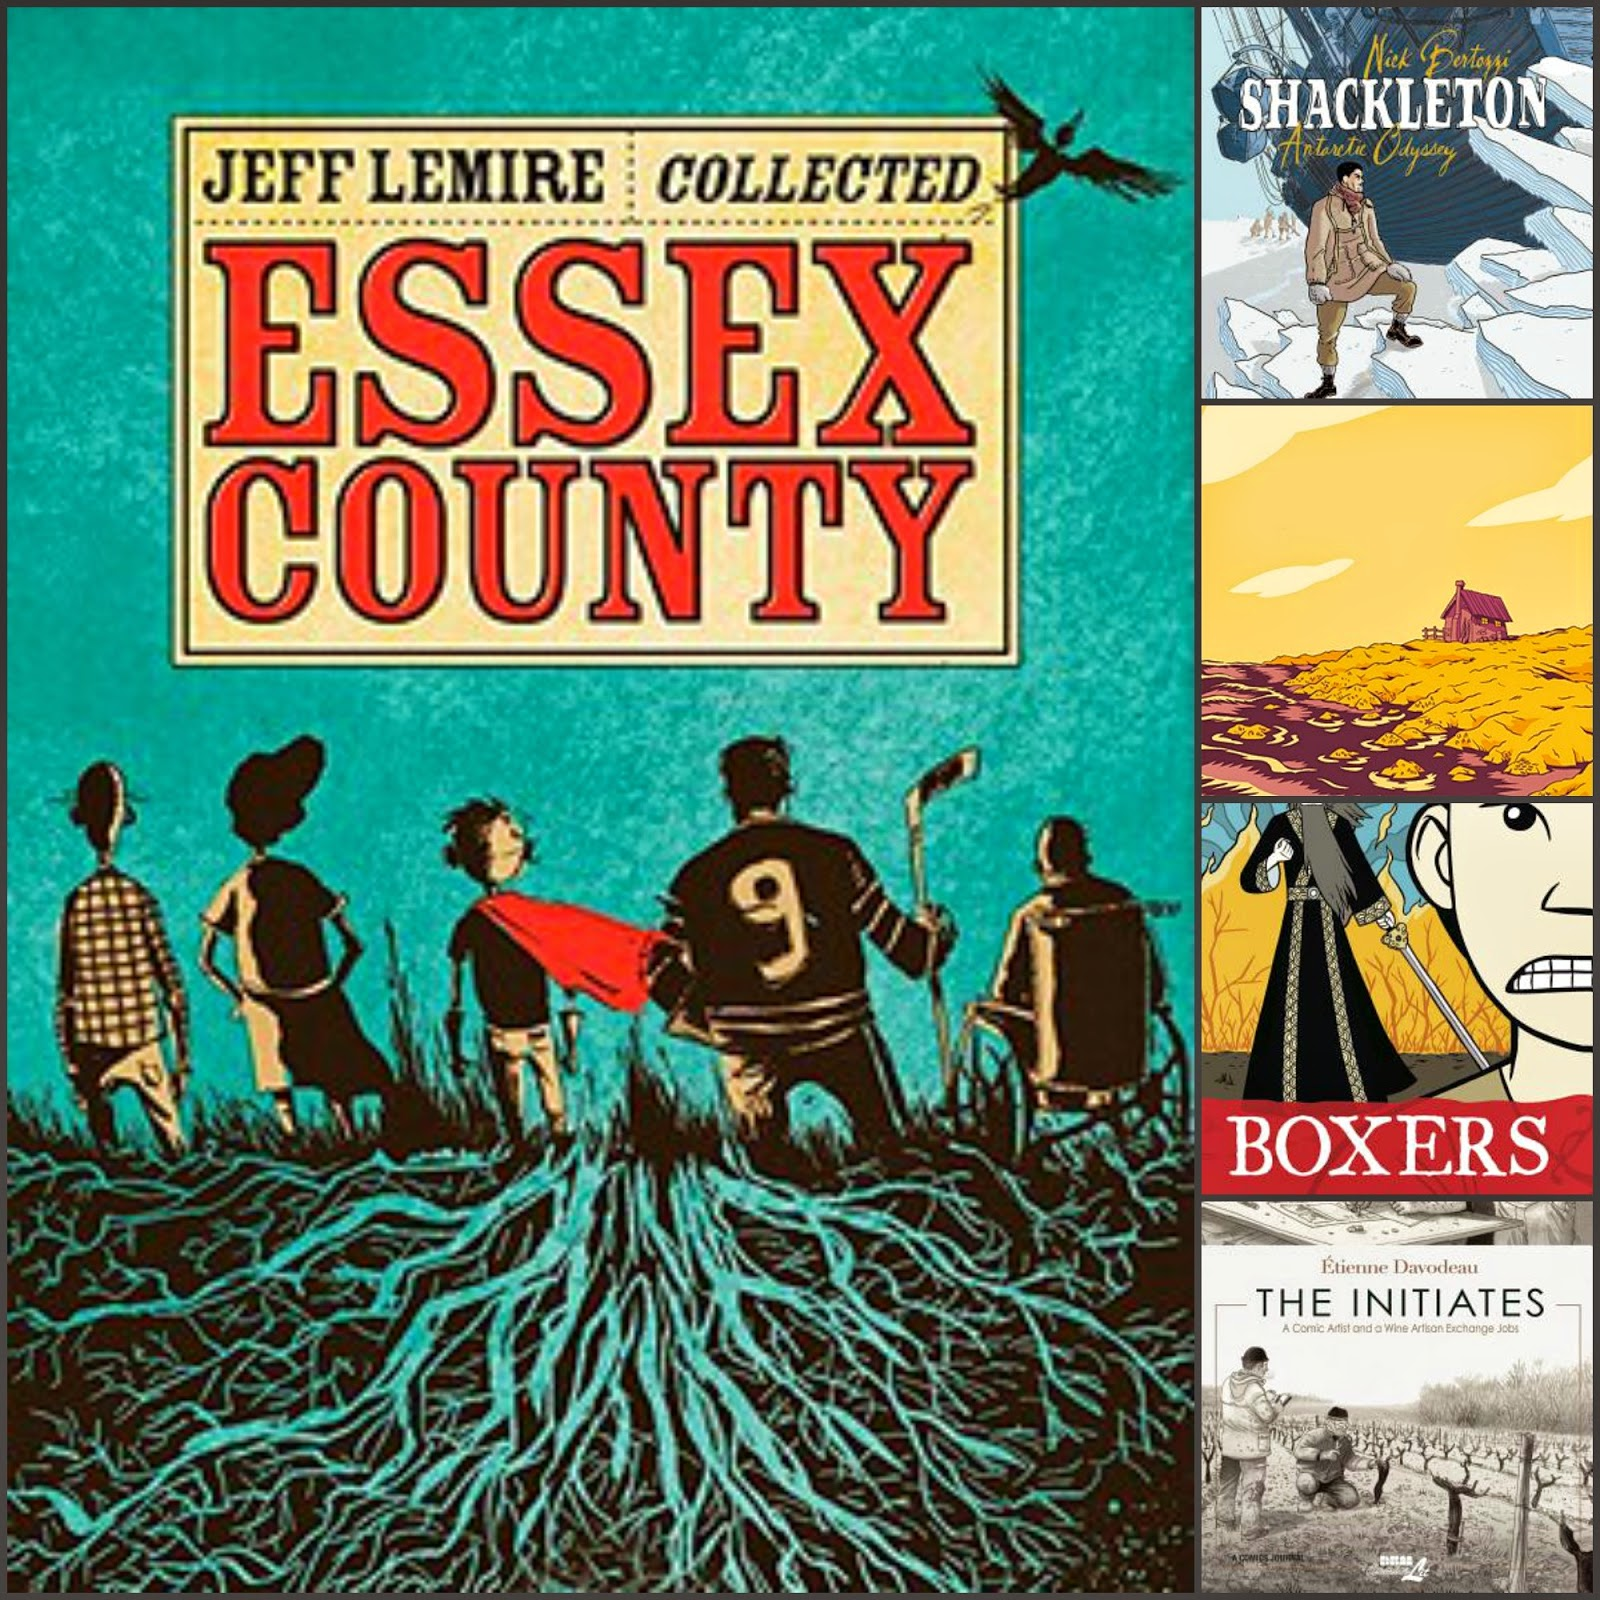 comics essex county, shackleton, boxers, the initiates